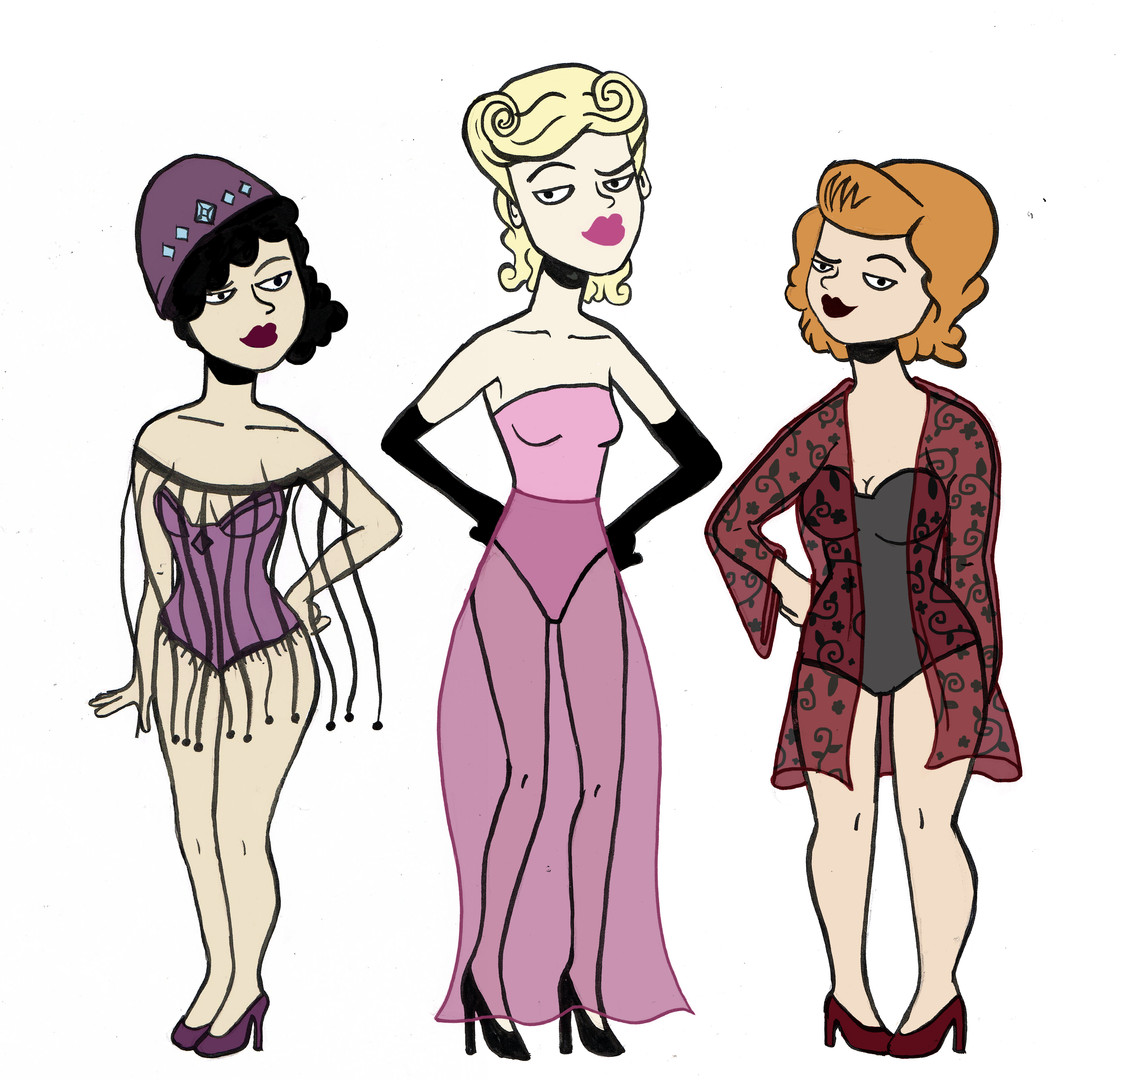 1940's character designs